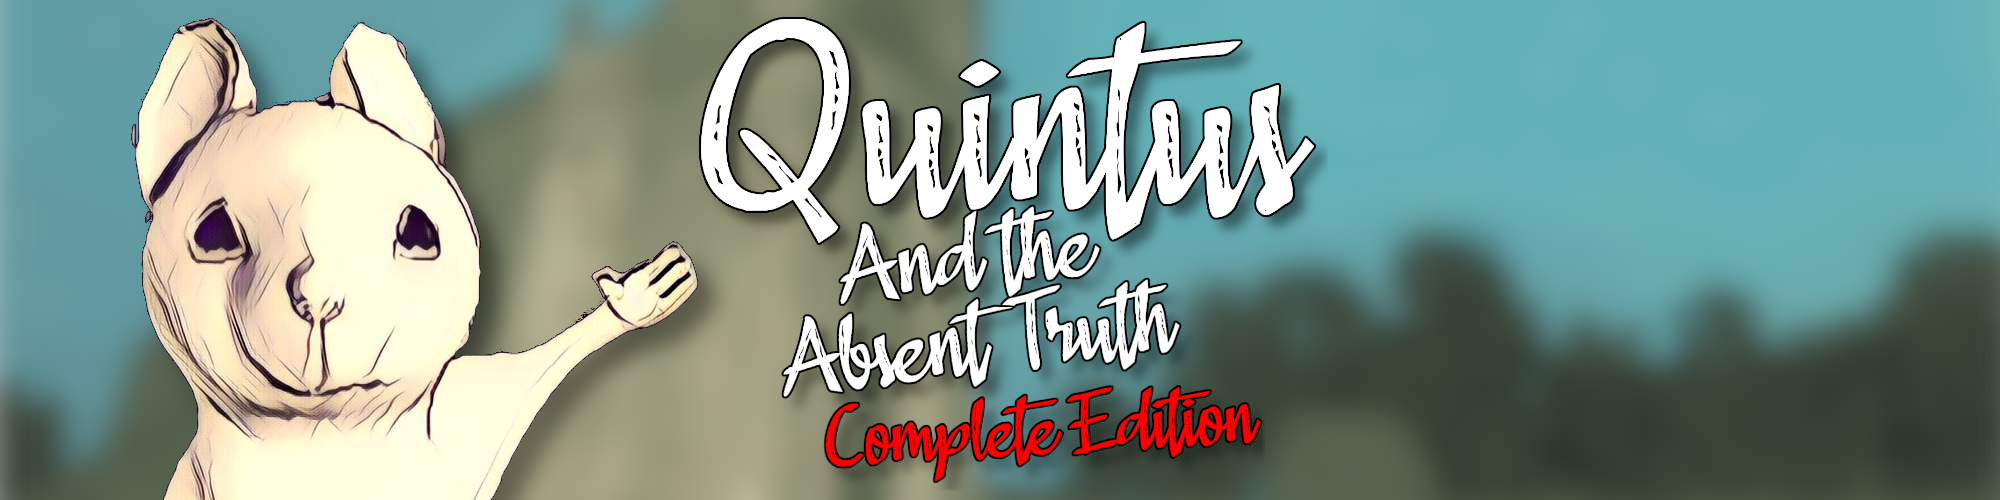 Quintus and the Absent Truth: Complete Edition